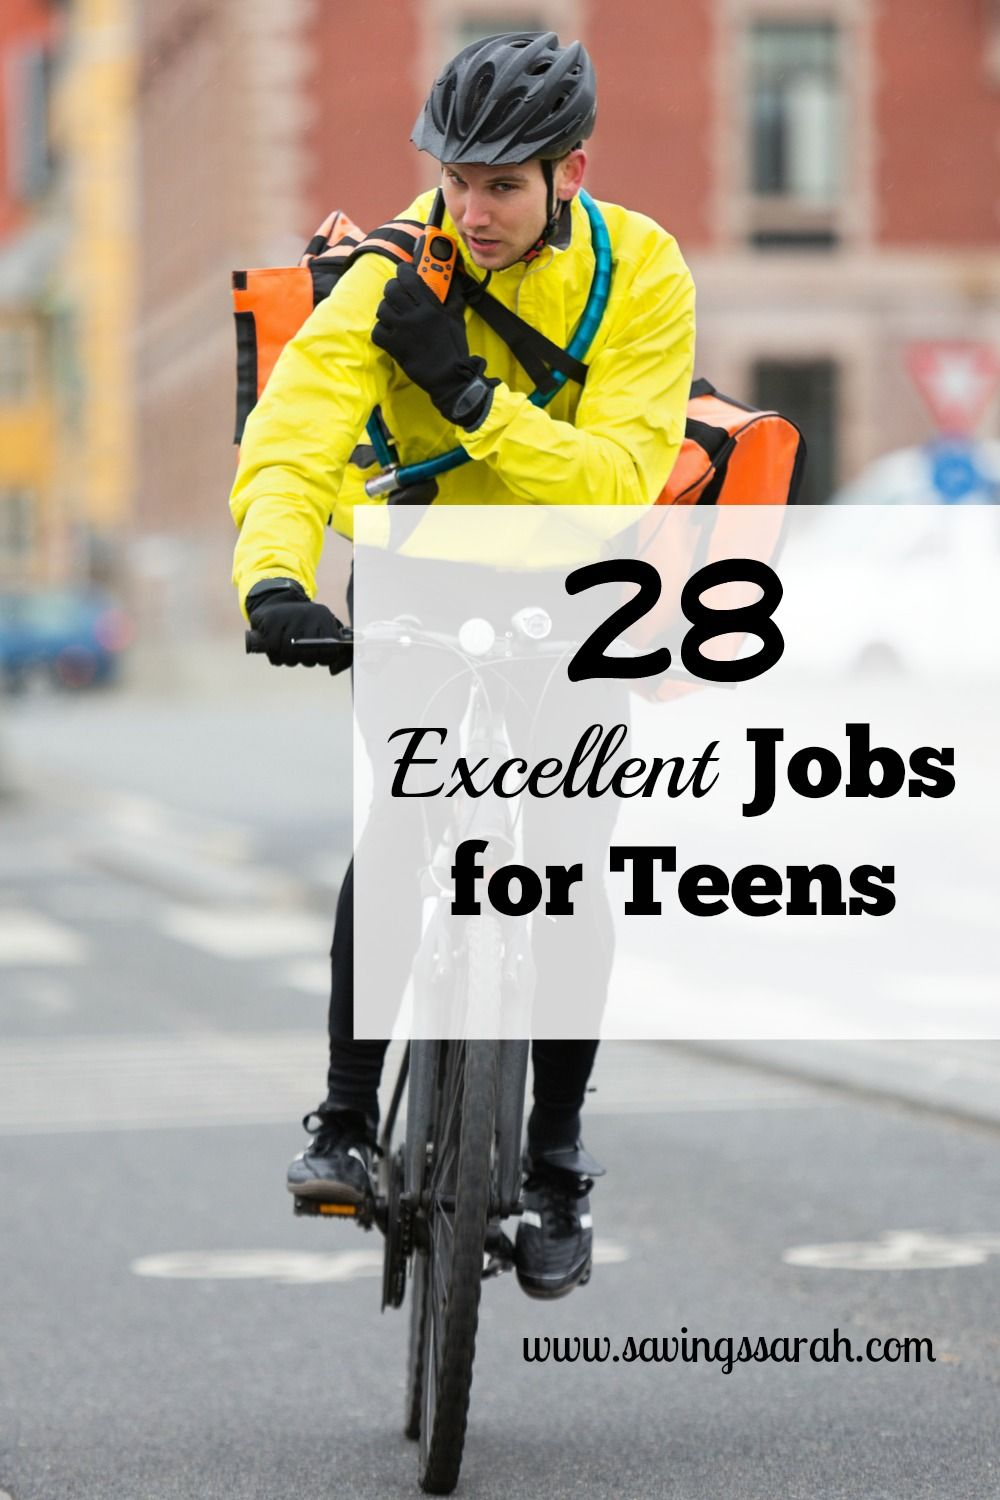 Parttime Jobs For Teenagers: 28 Excellent Jobs For Teens